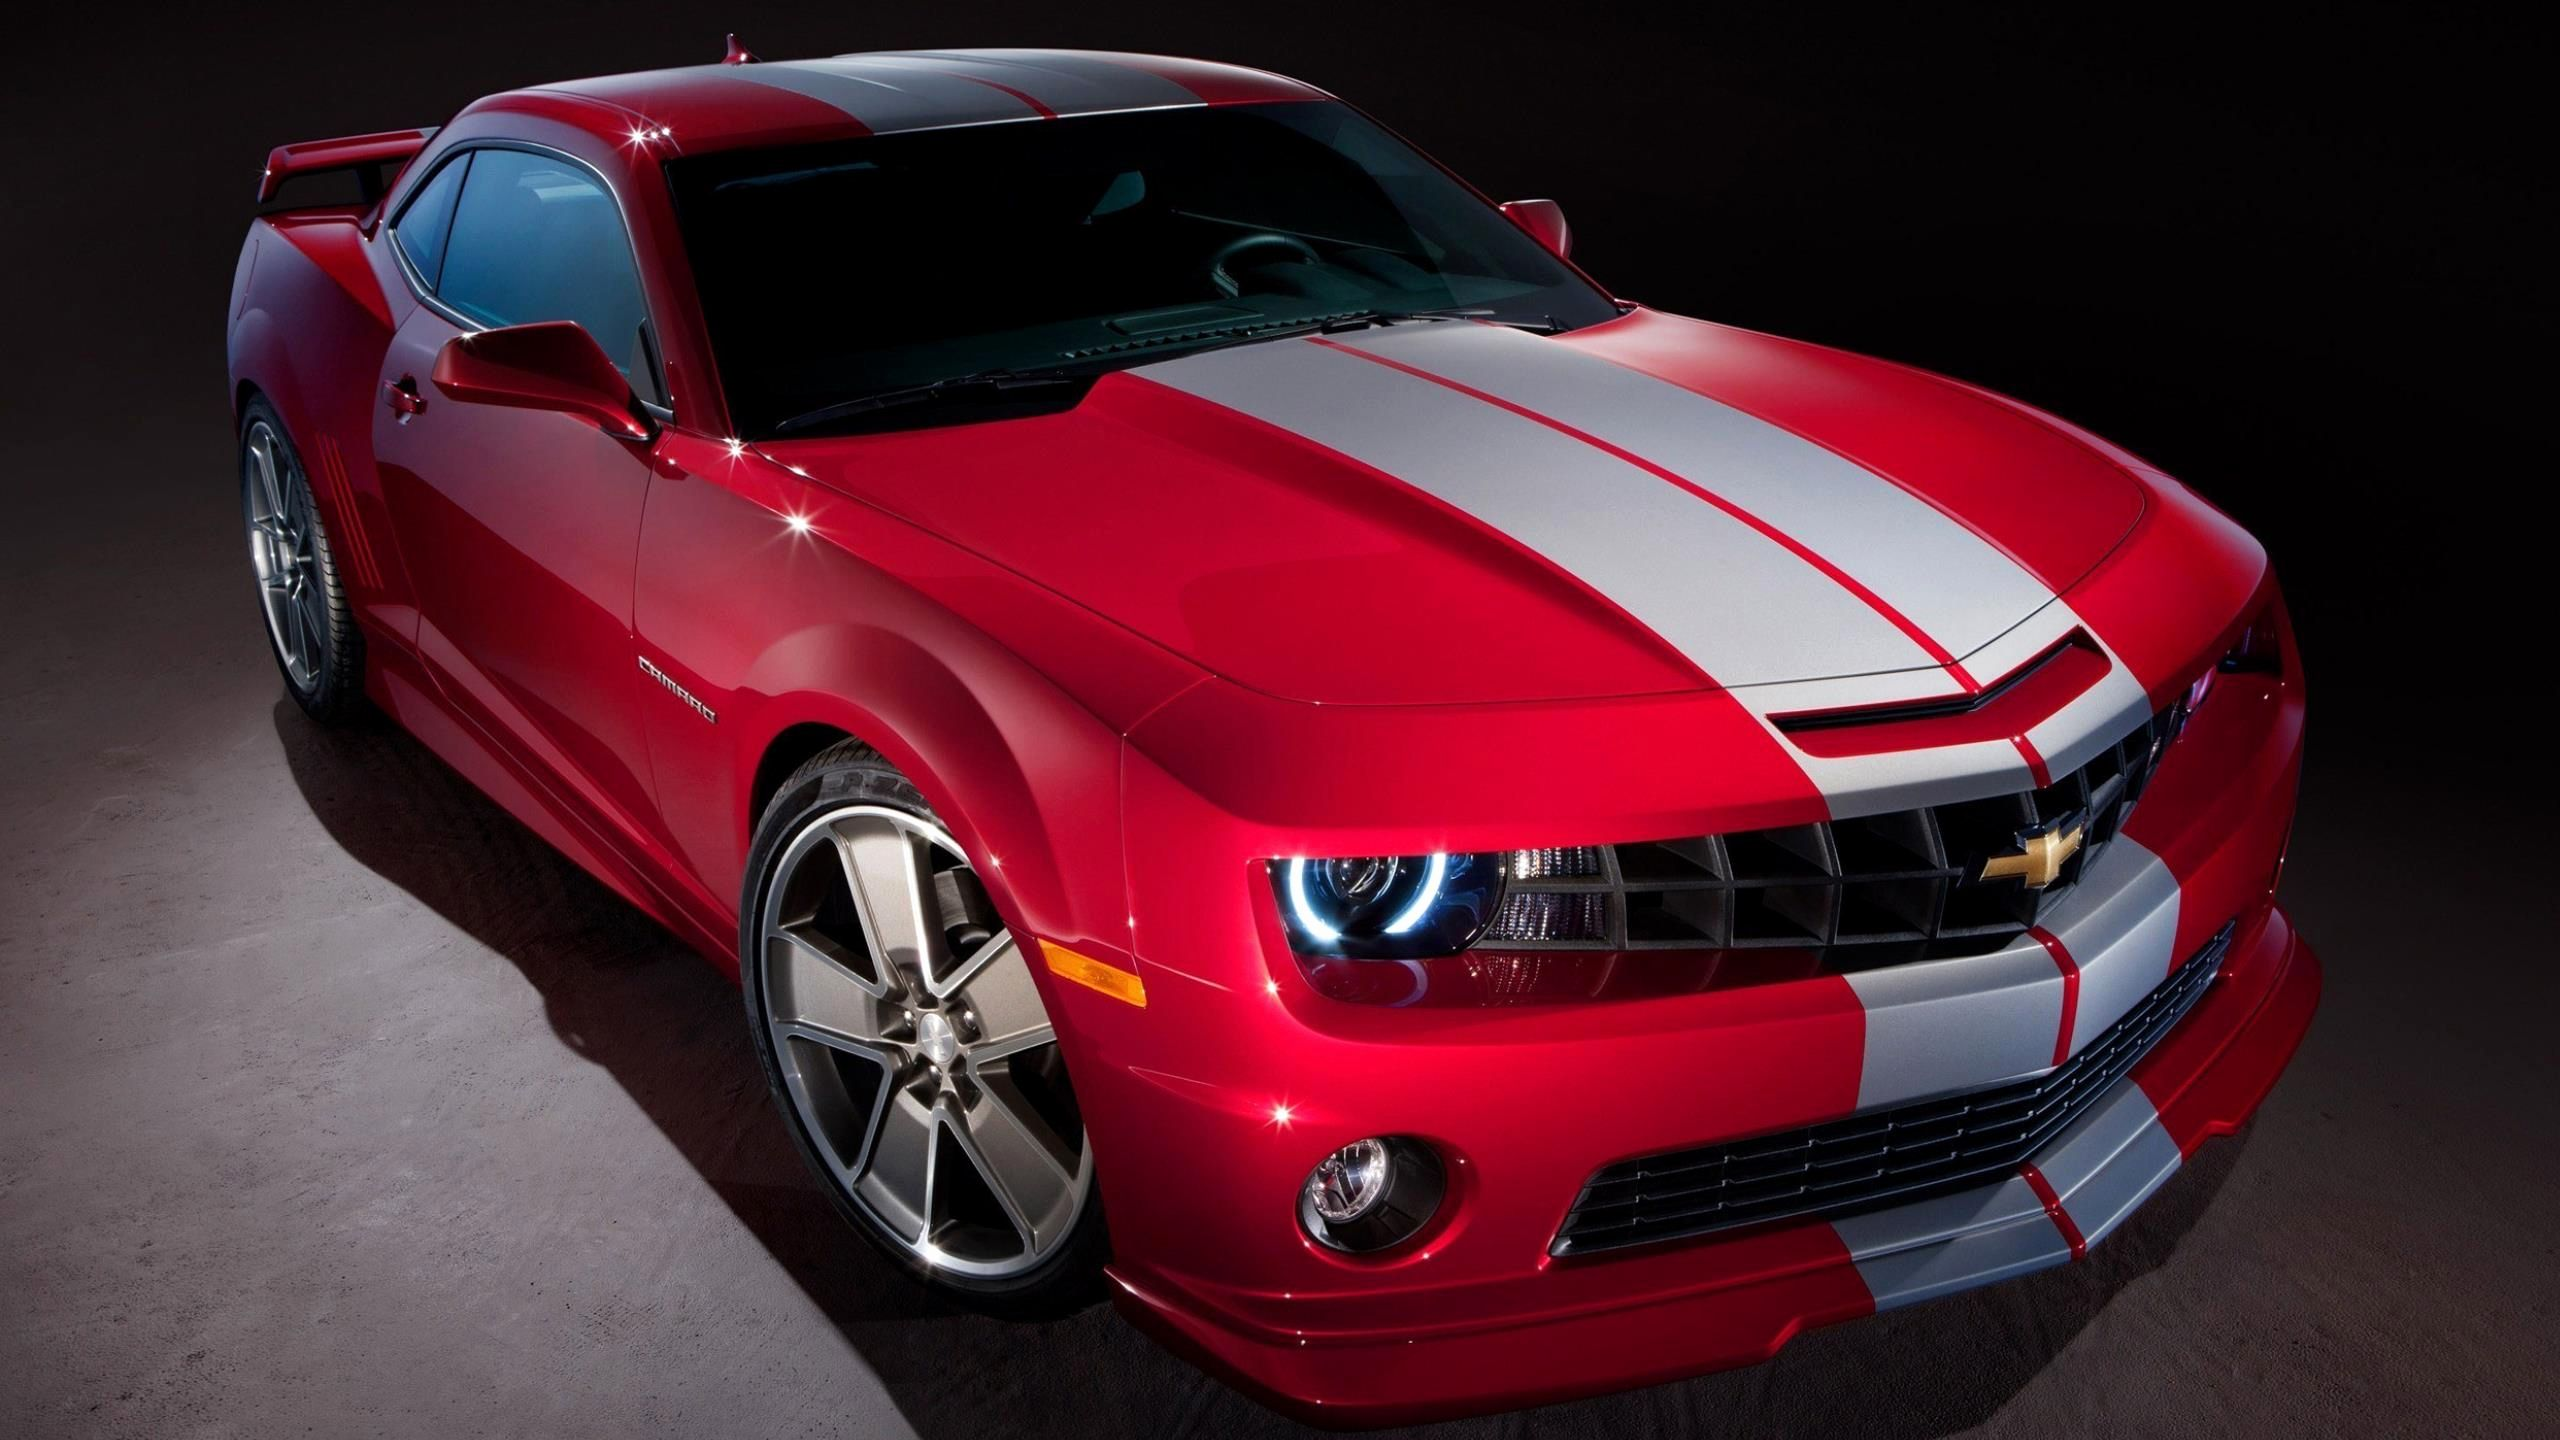 Red Hot Cars Wallpapers   Top Red Hot Cars Backgrounds 2560x1440